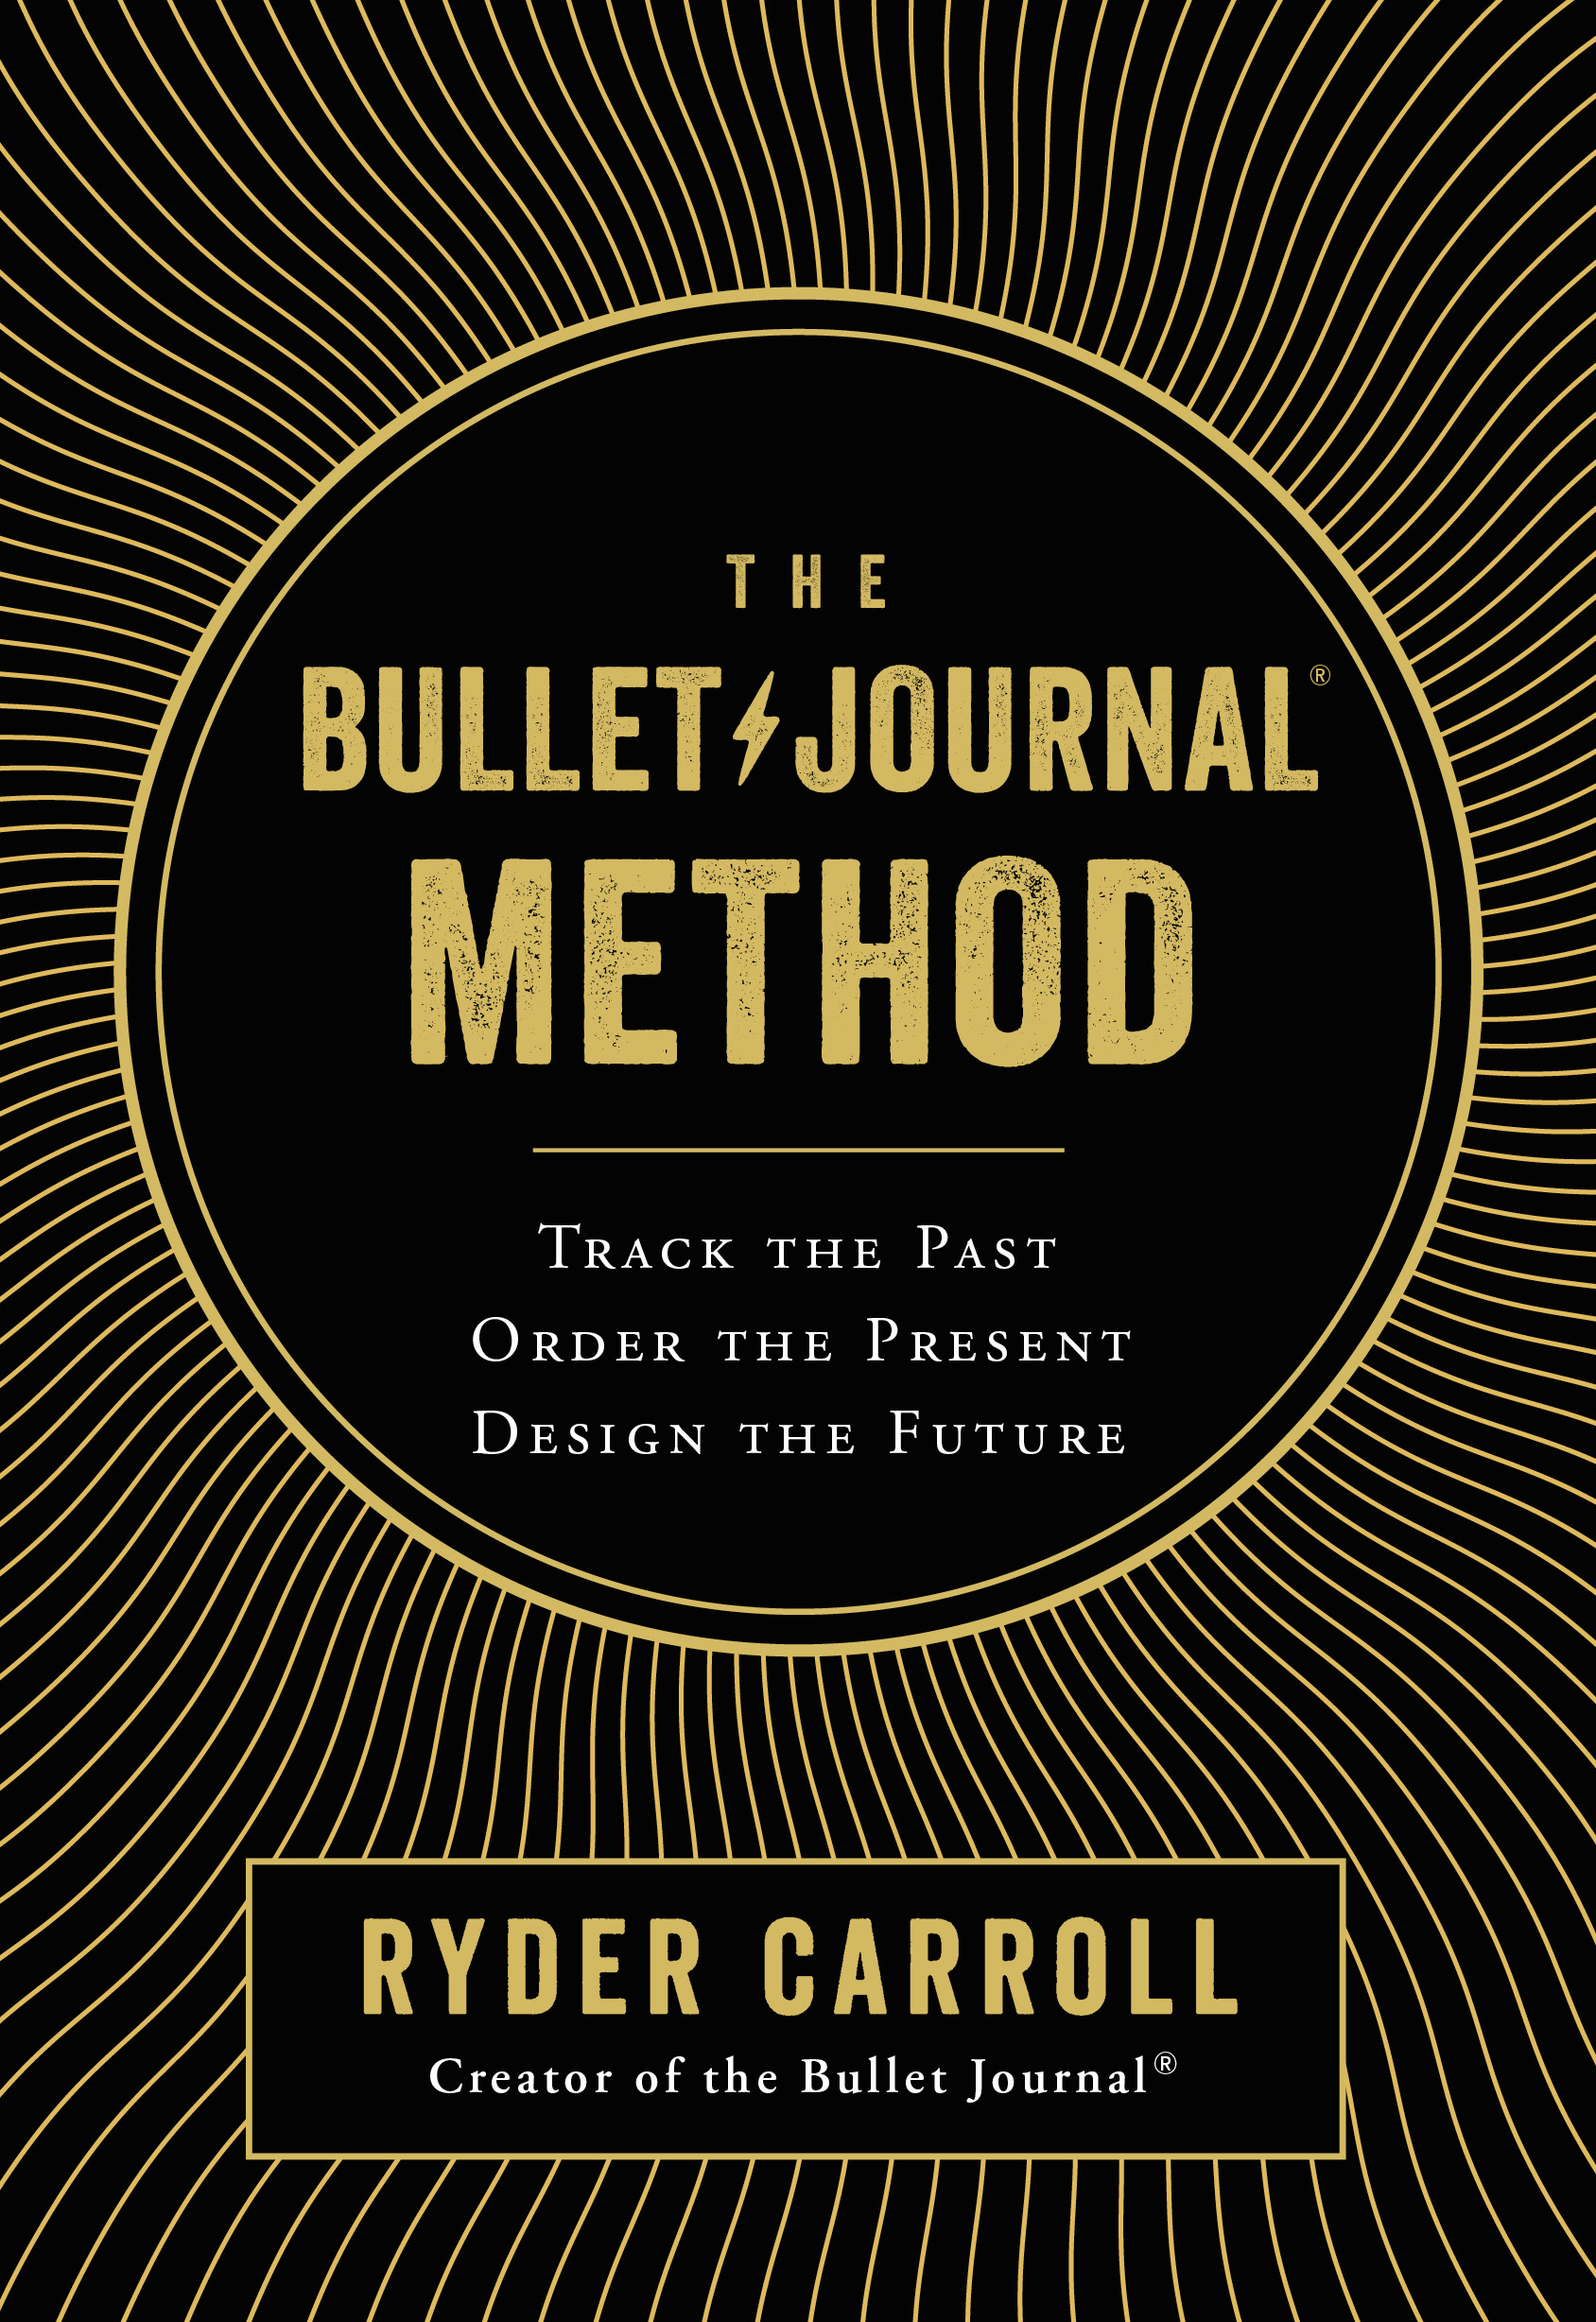 Book Launch: The Bullet Journal Method by Ryder Carroll in conversation w/ Amber Rae